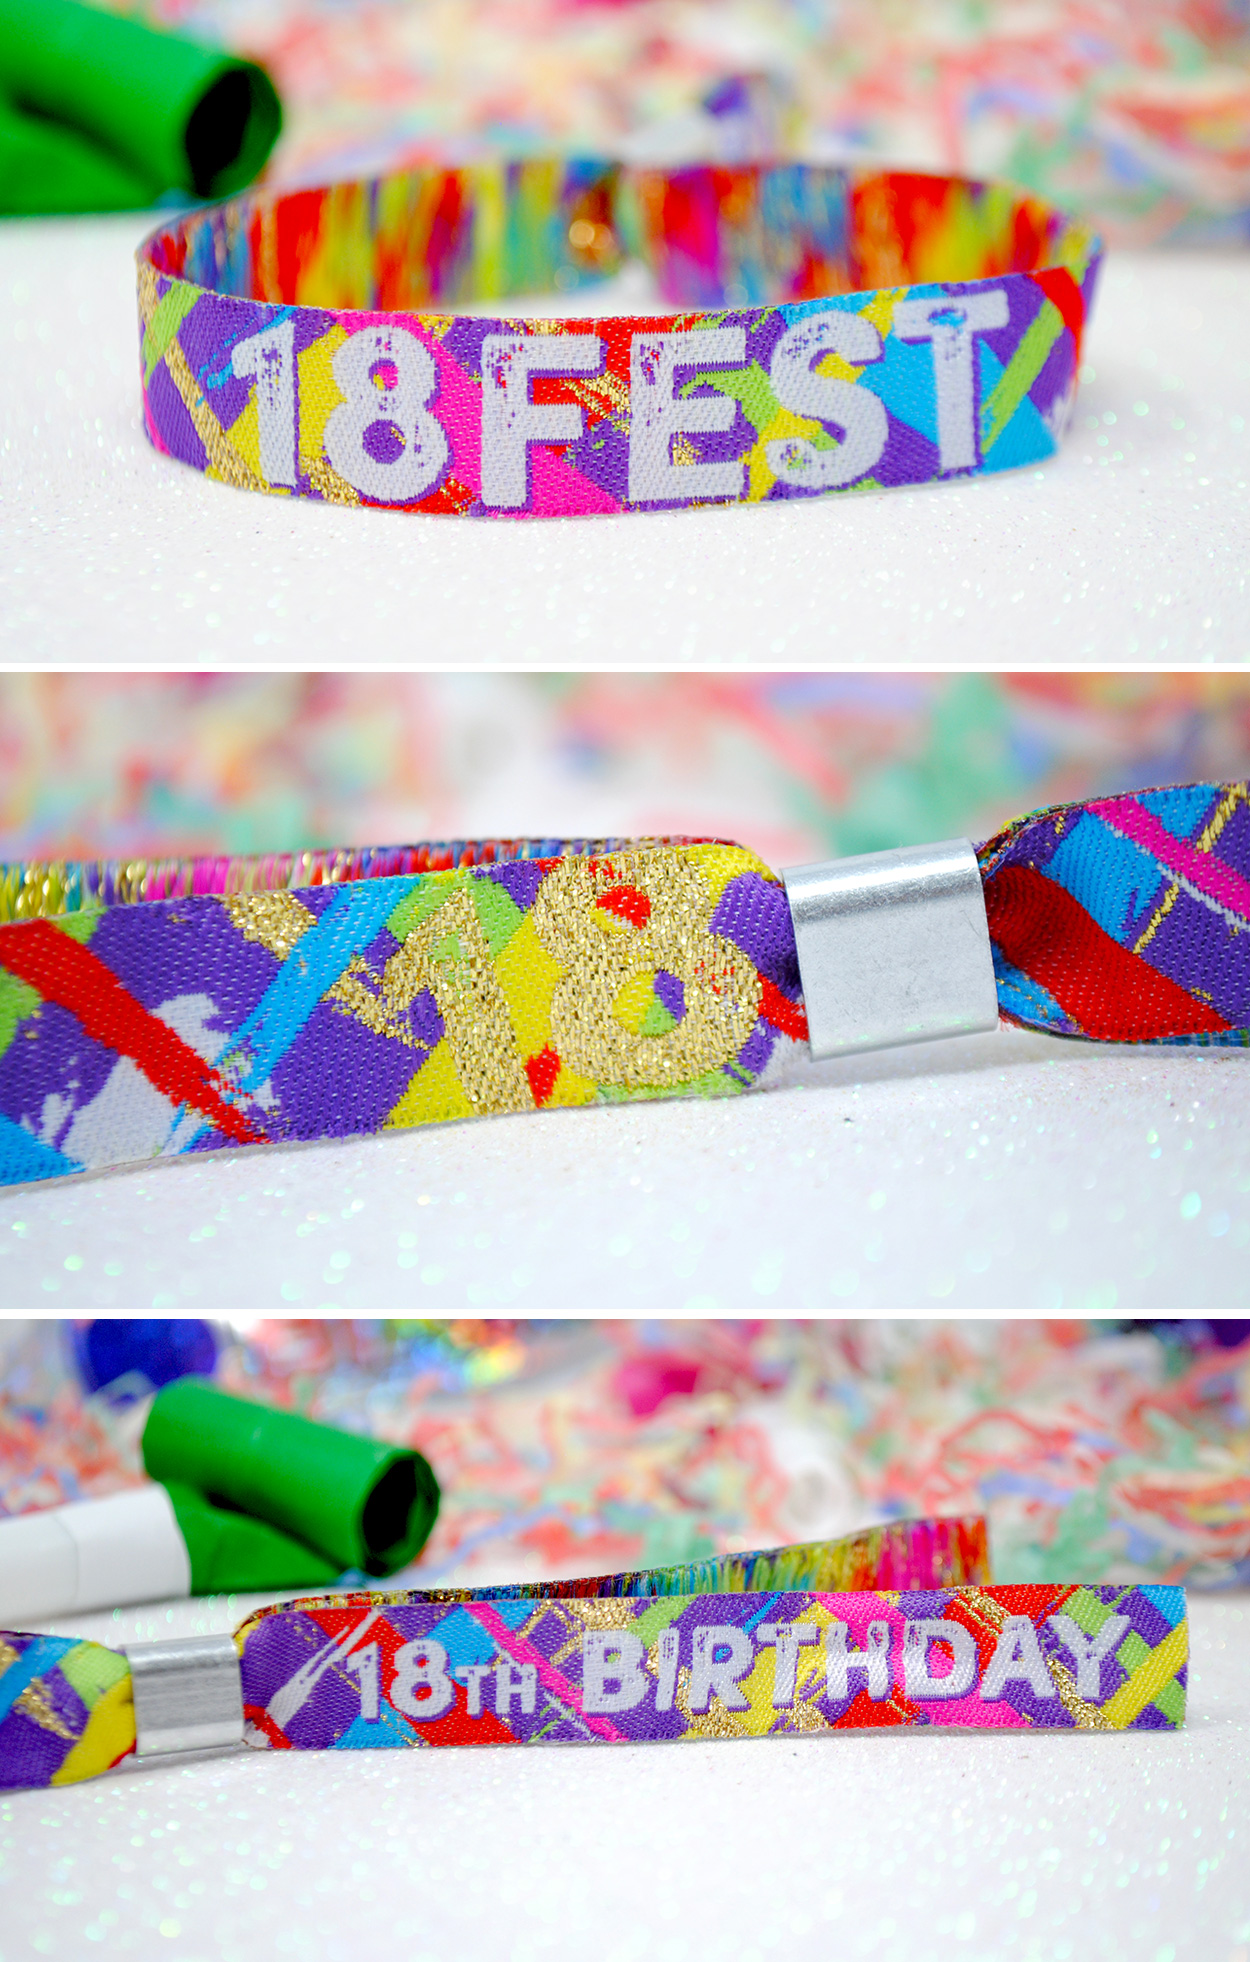 18th birthday festival party favour wristbands